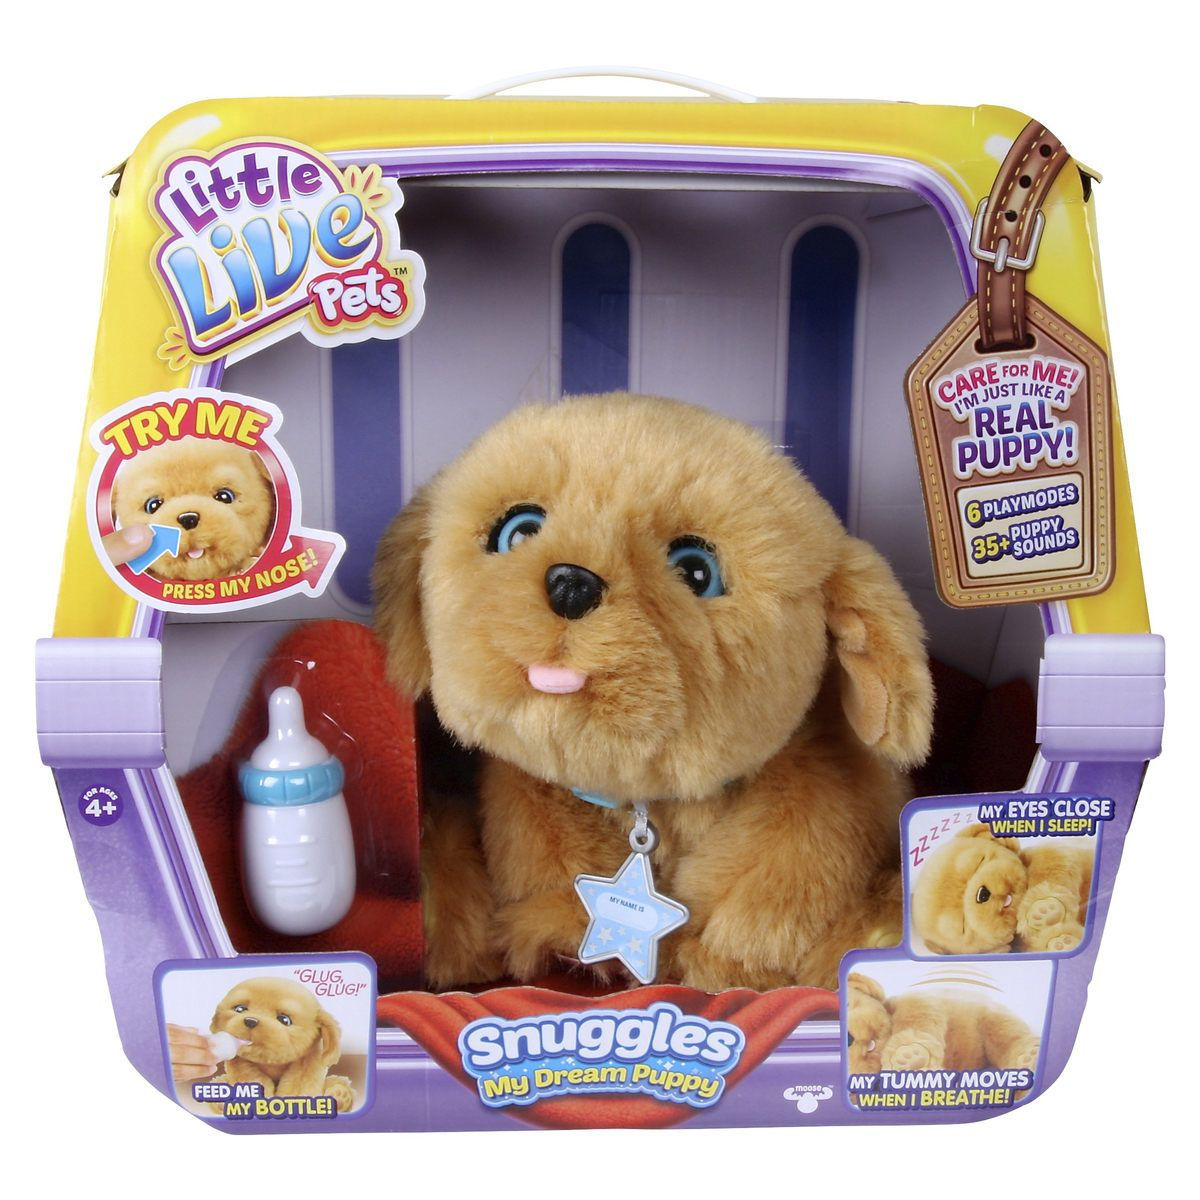 Pin By Jess On Christmas Gift Ideas For The Family Little Live Pets Puppy Soft Toy Puppy Snuggles